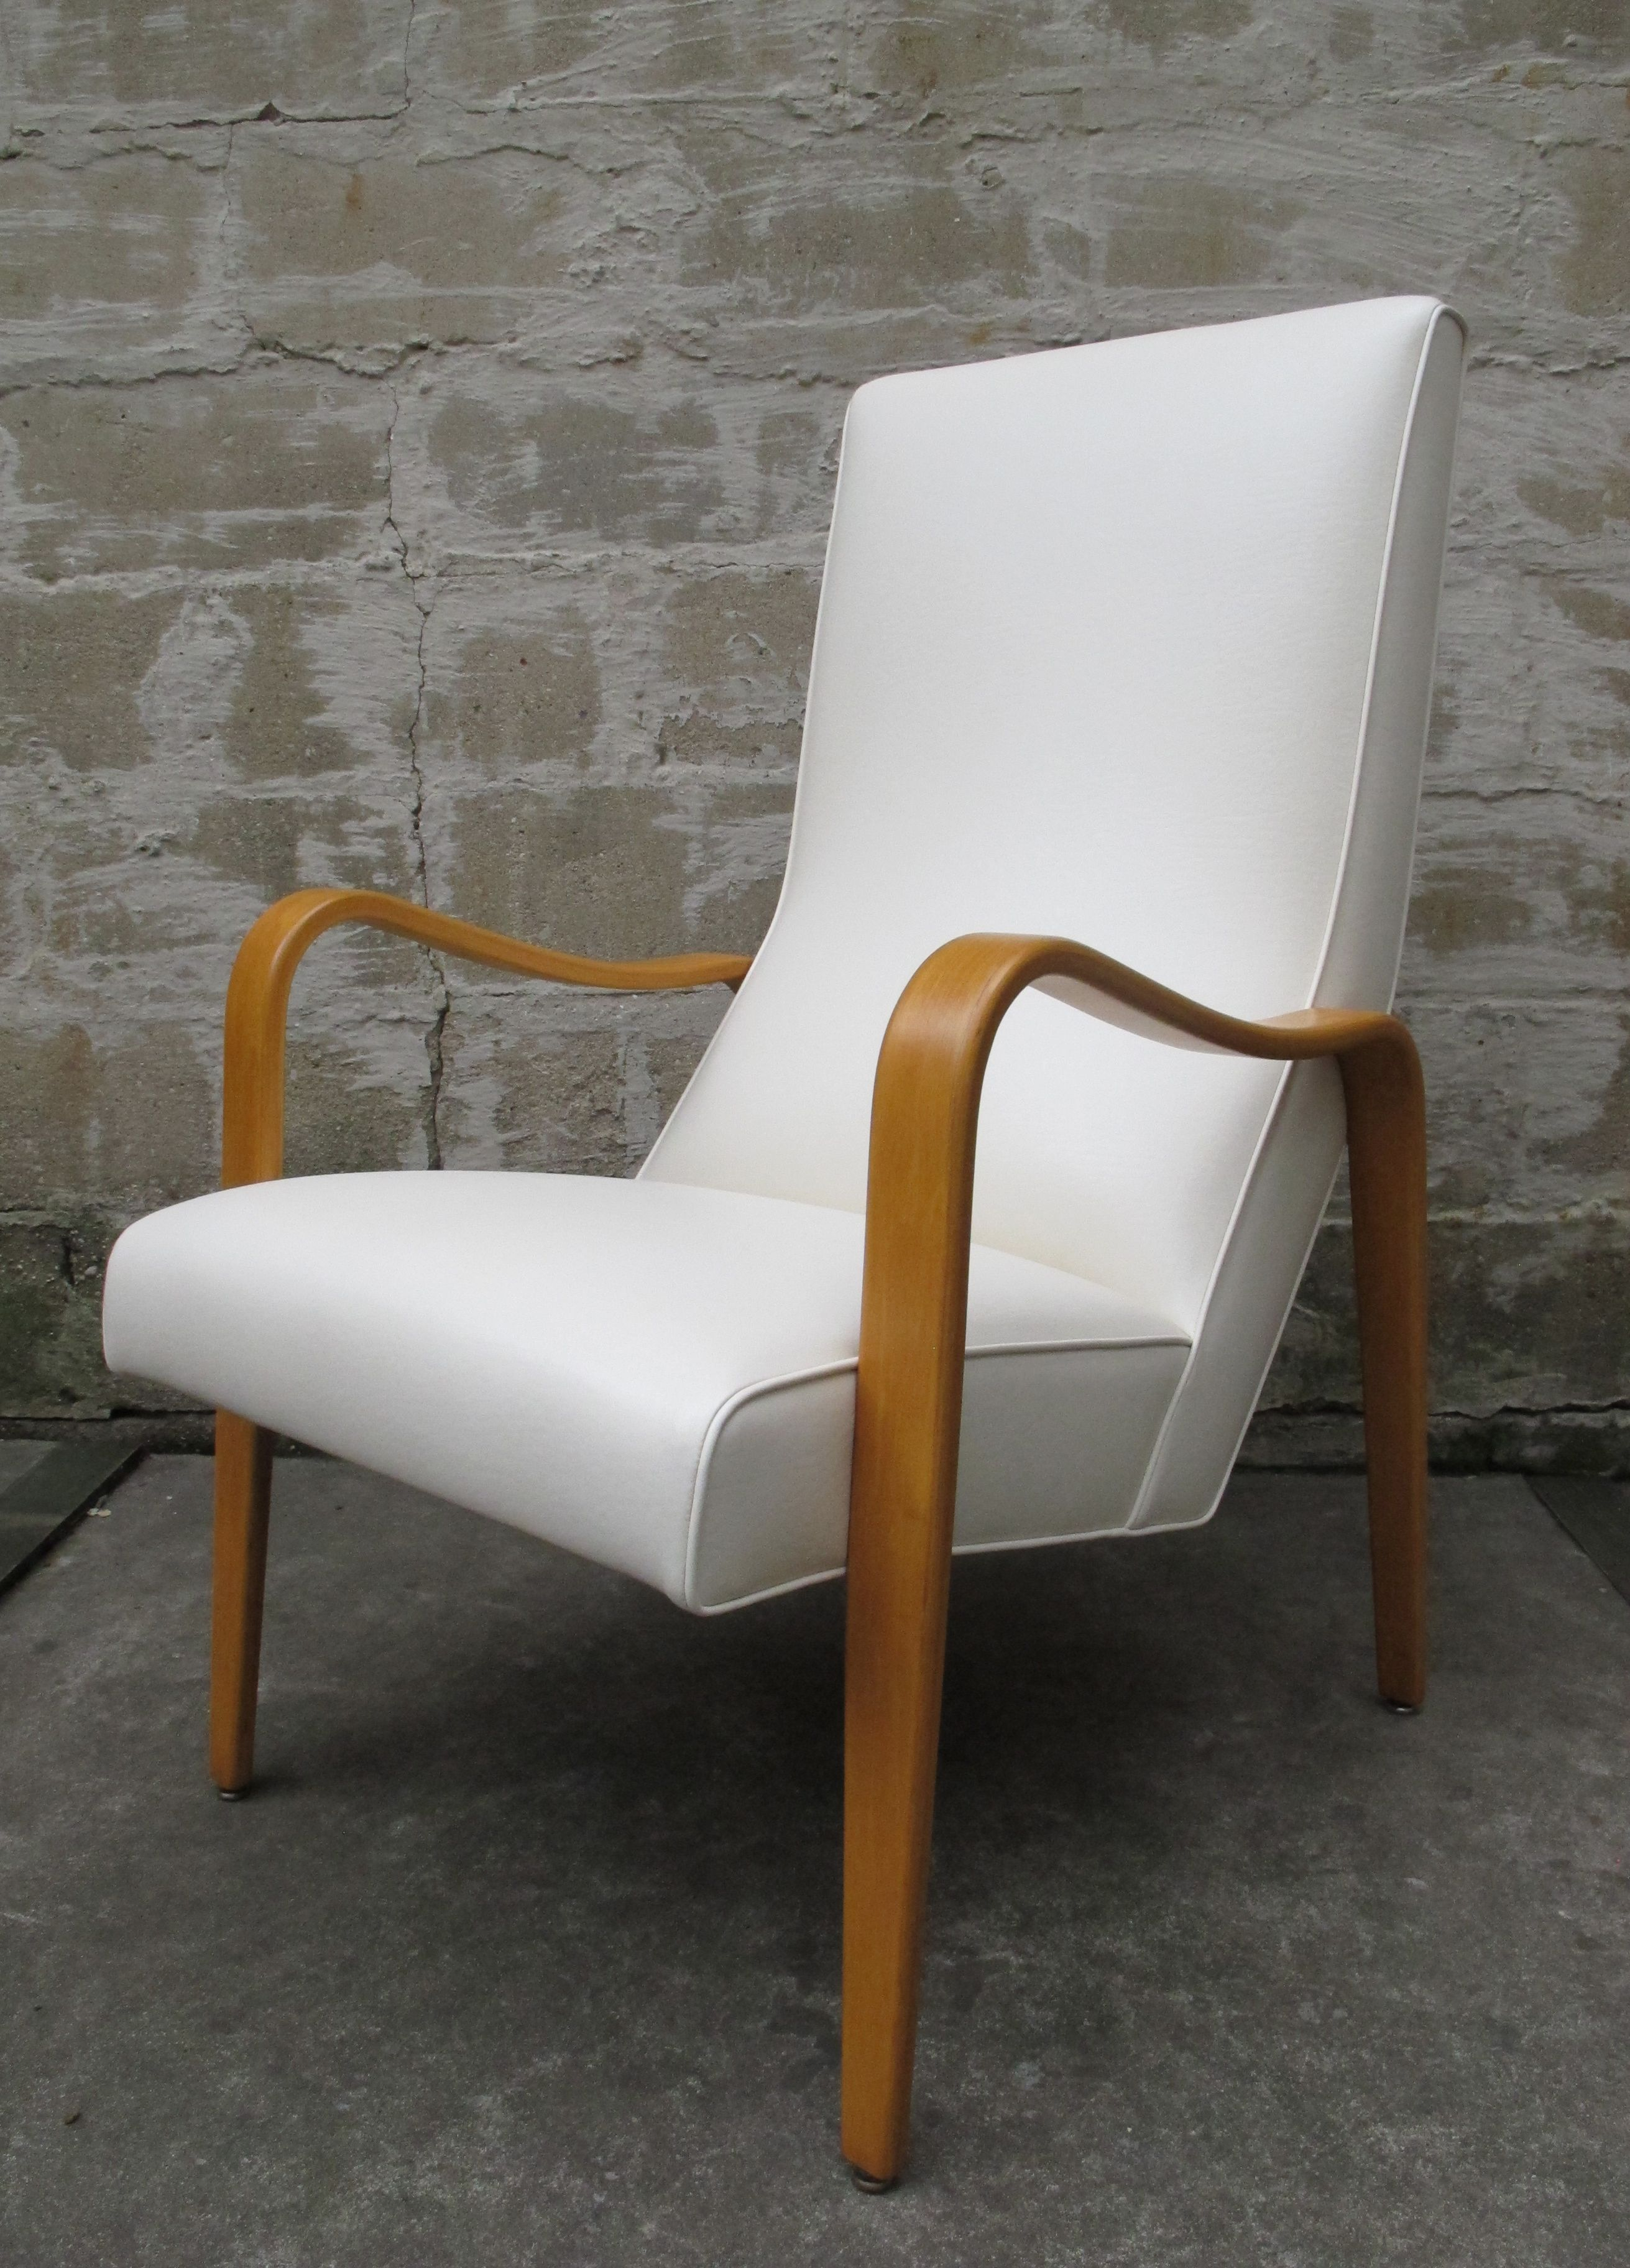 MID CENTURY ALVAR AALTO STYLE BENTWOOD LOUNGE CHAIR BY THONET